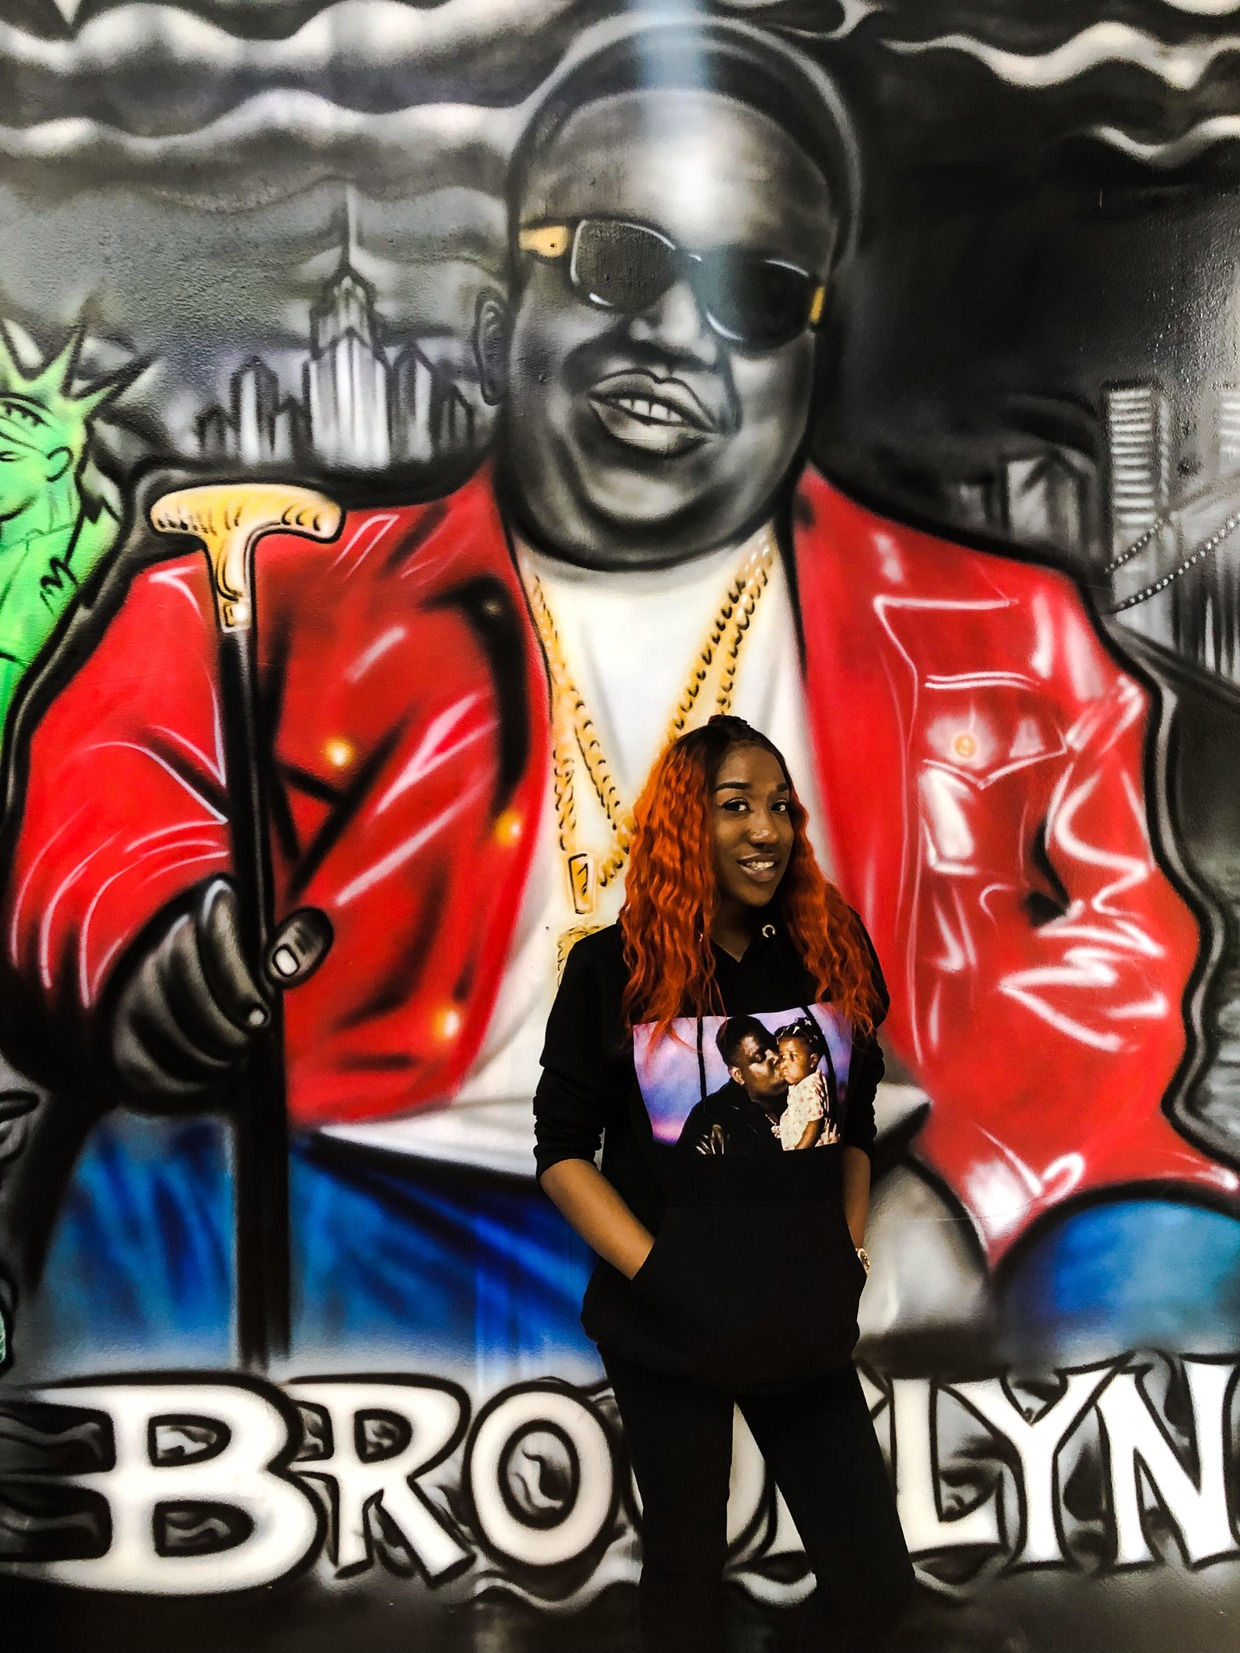 Biggie's Daughter Opens New Location of Her Clothing Line Inspired by Her Father and Hip-Hop